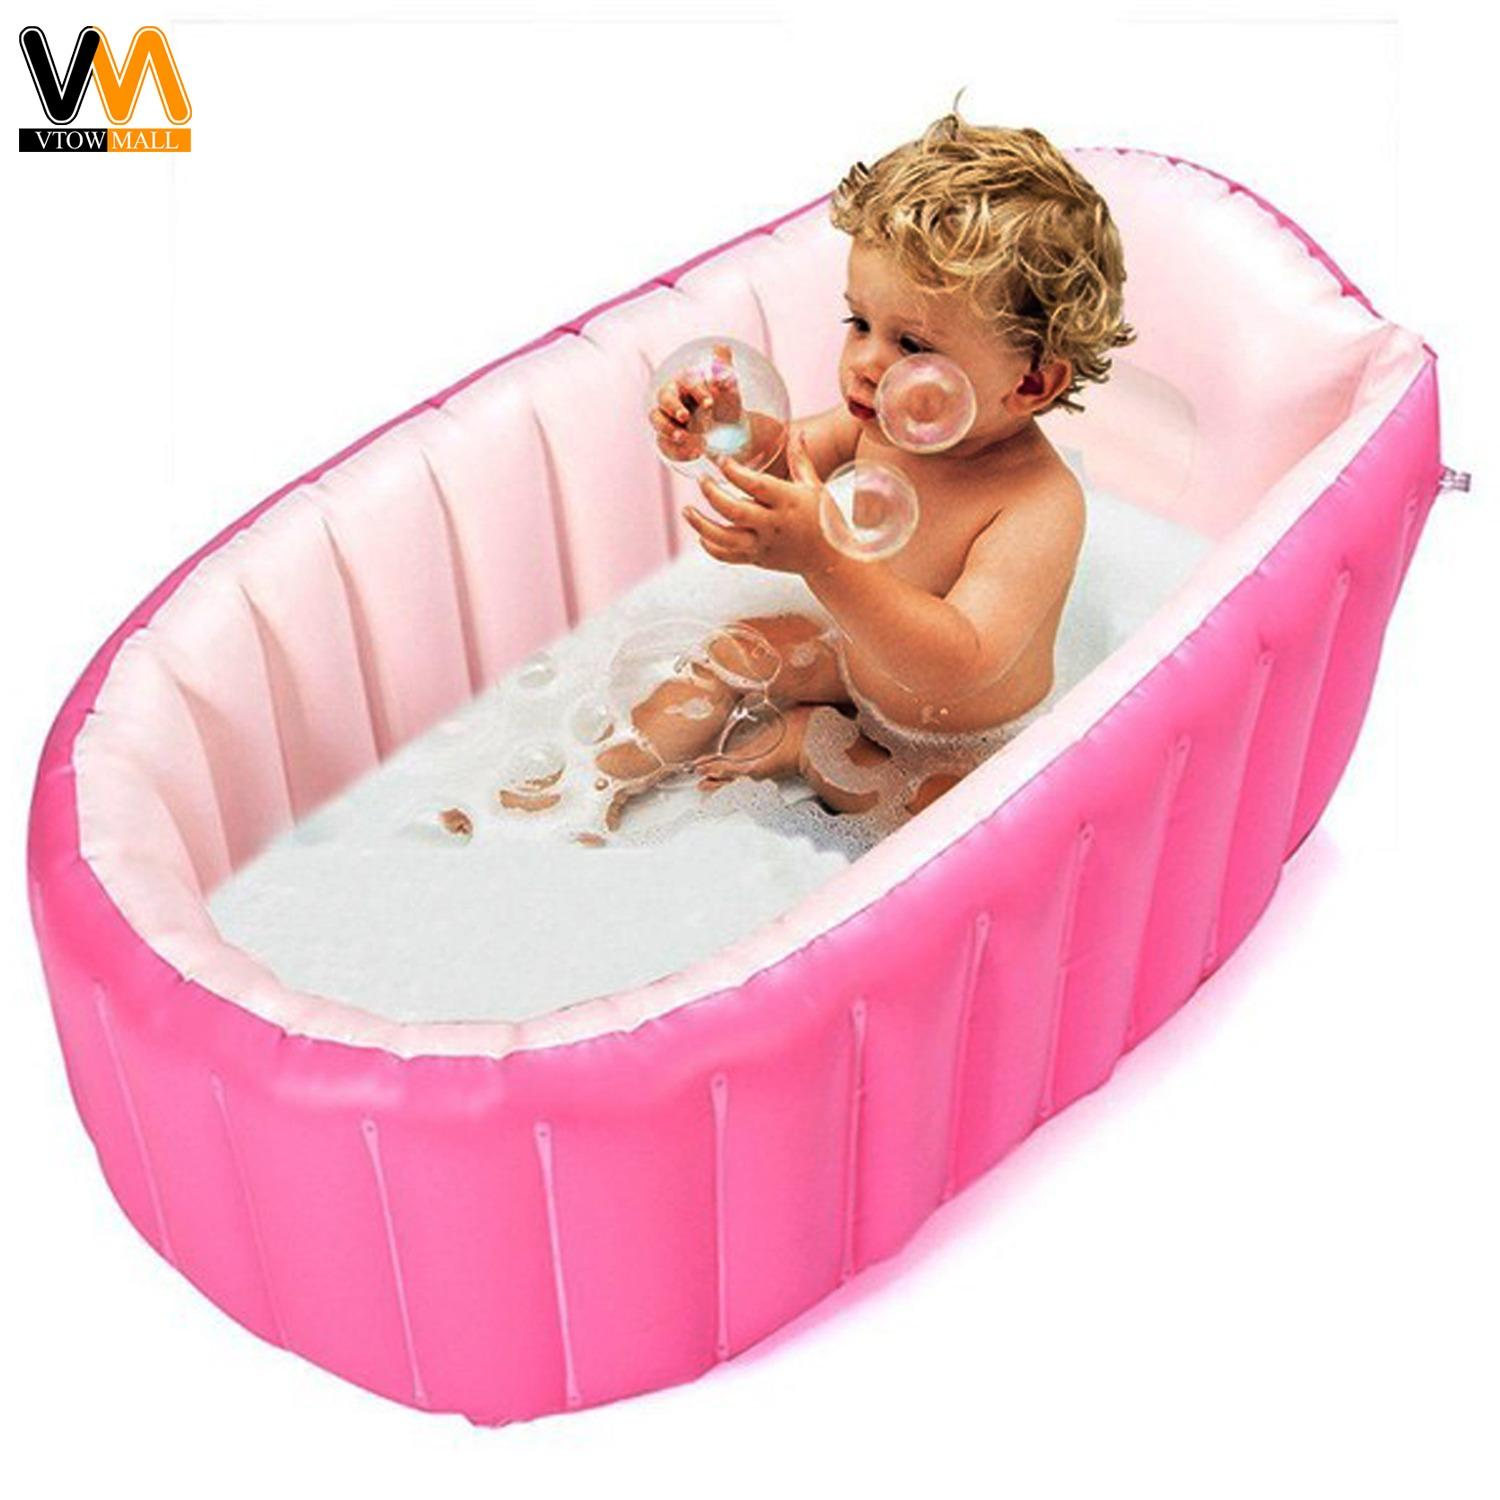 Intime Philippines: Intime price list - Bath Tub for Babies for sale ...